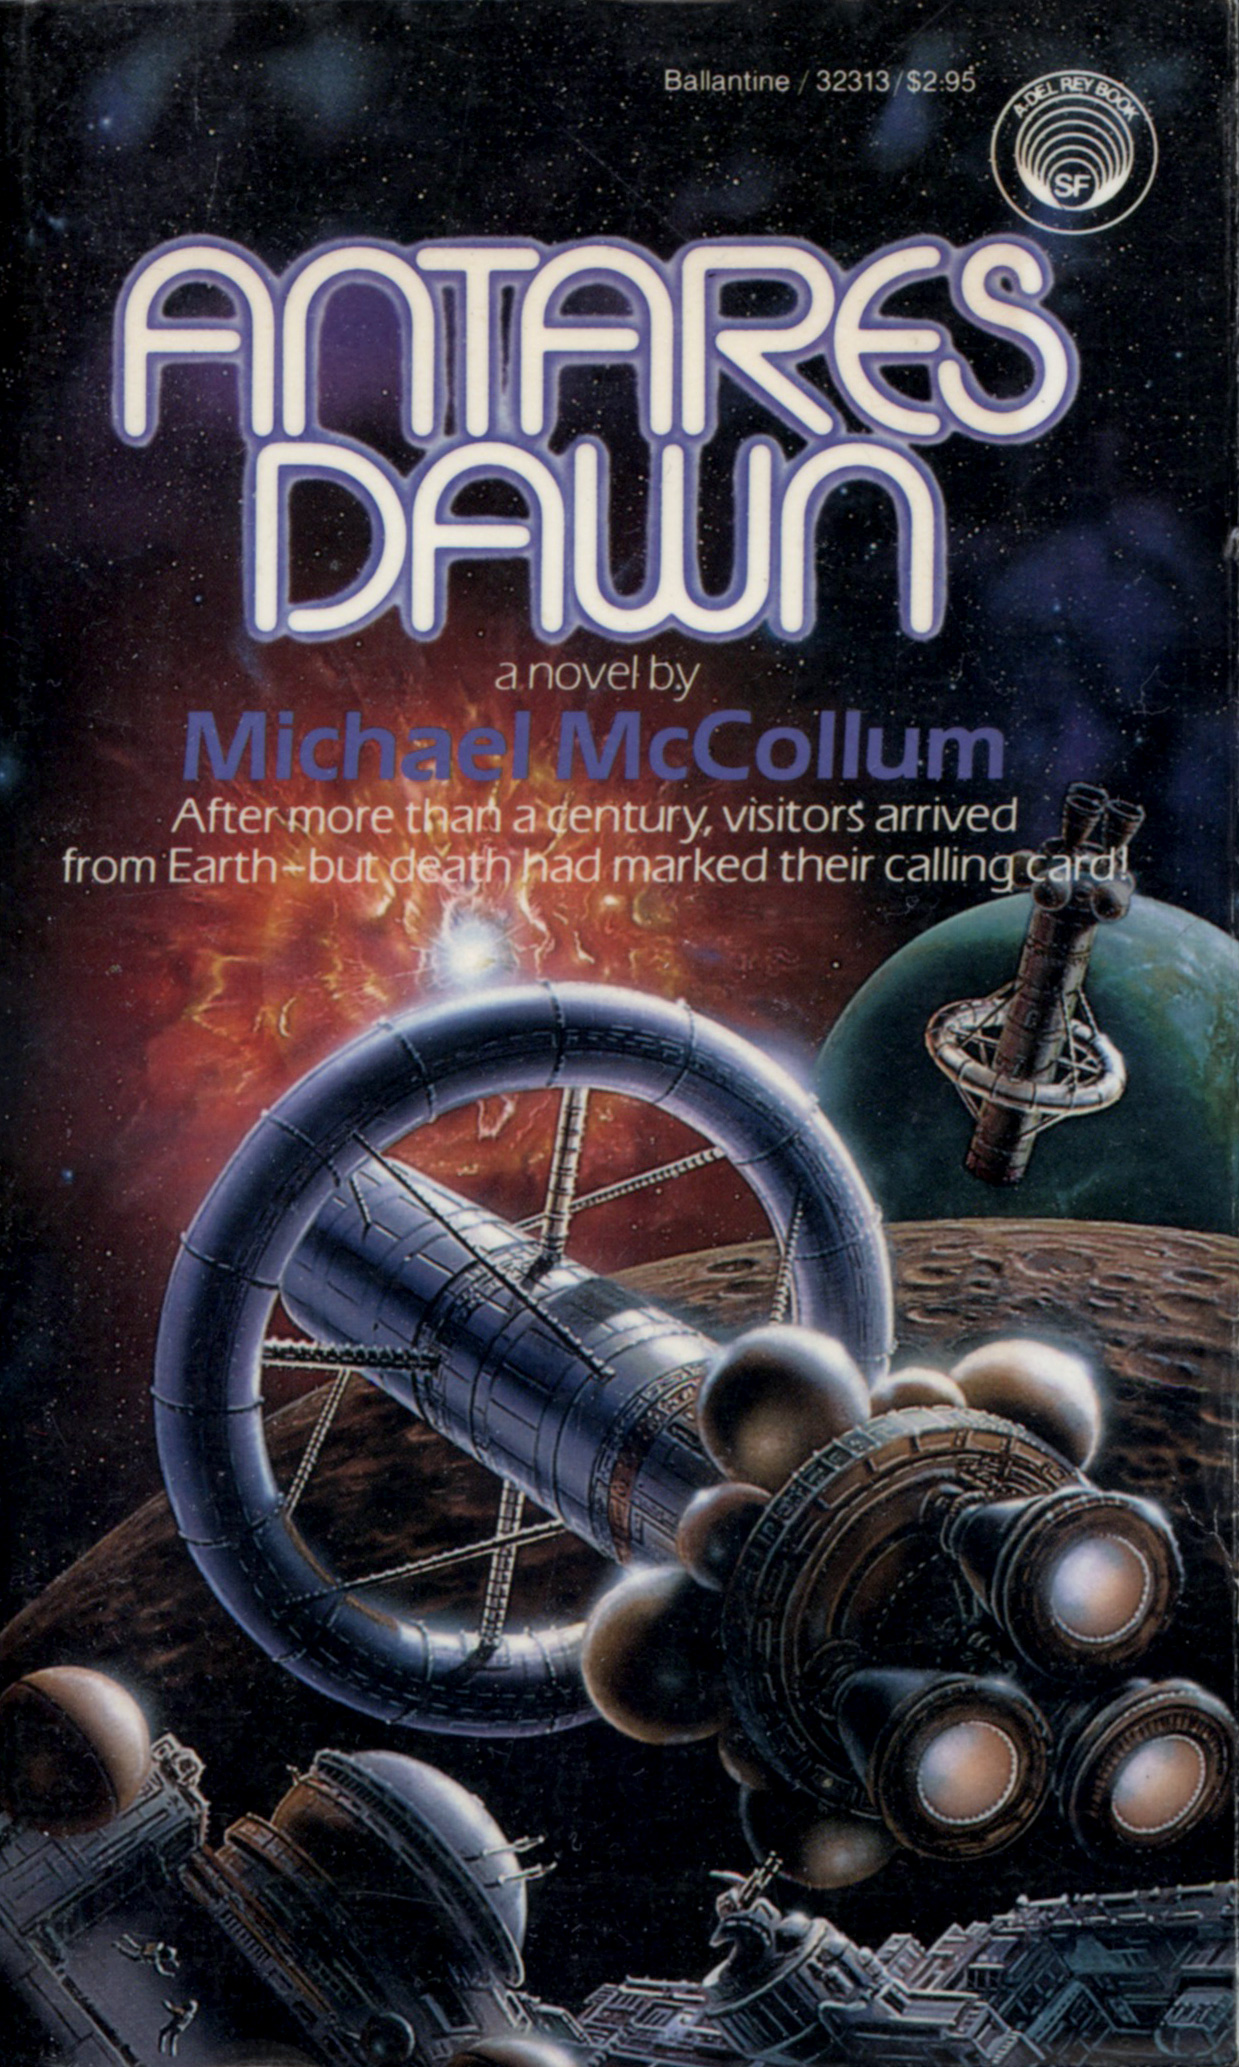 Antares Dawn By Michael Mccollum Book Review Mysf Reviews